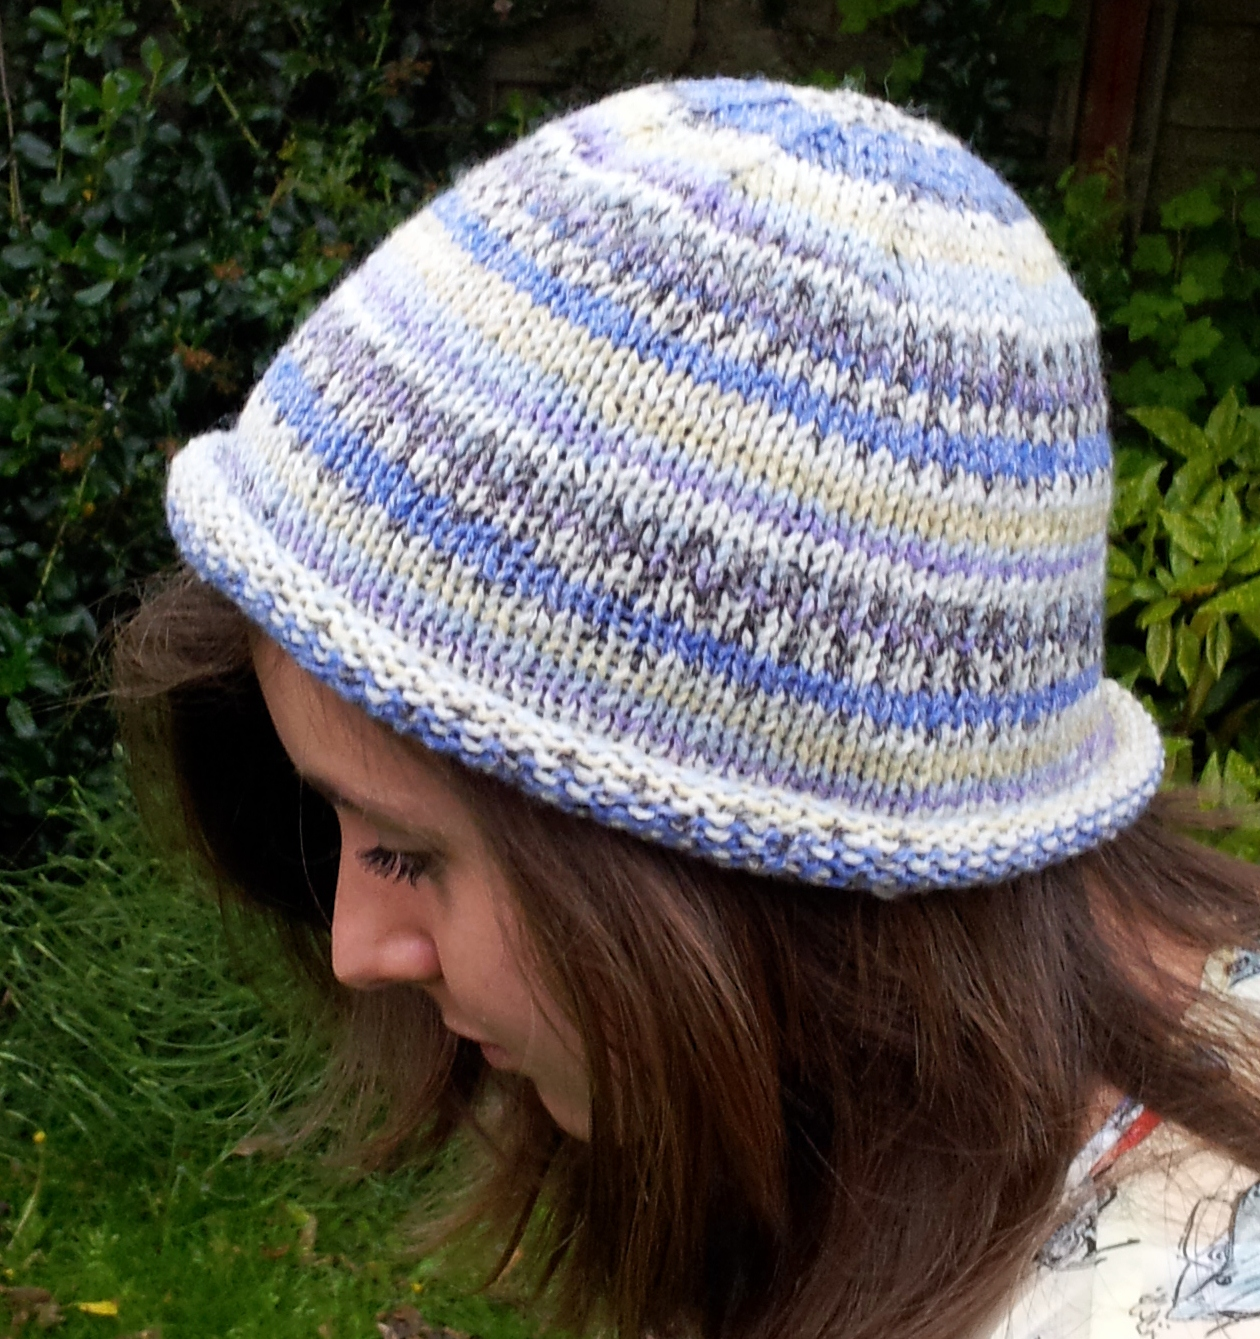 Knitted Rolled Brim Beanie Hat   Free beginners pattern thestitchsharer